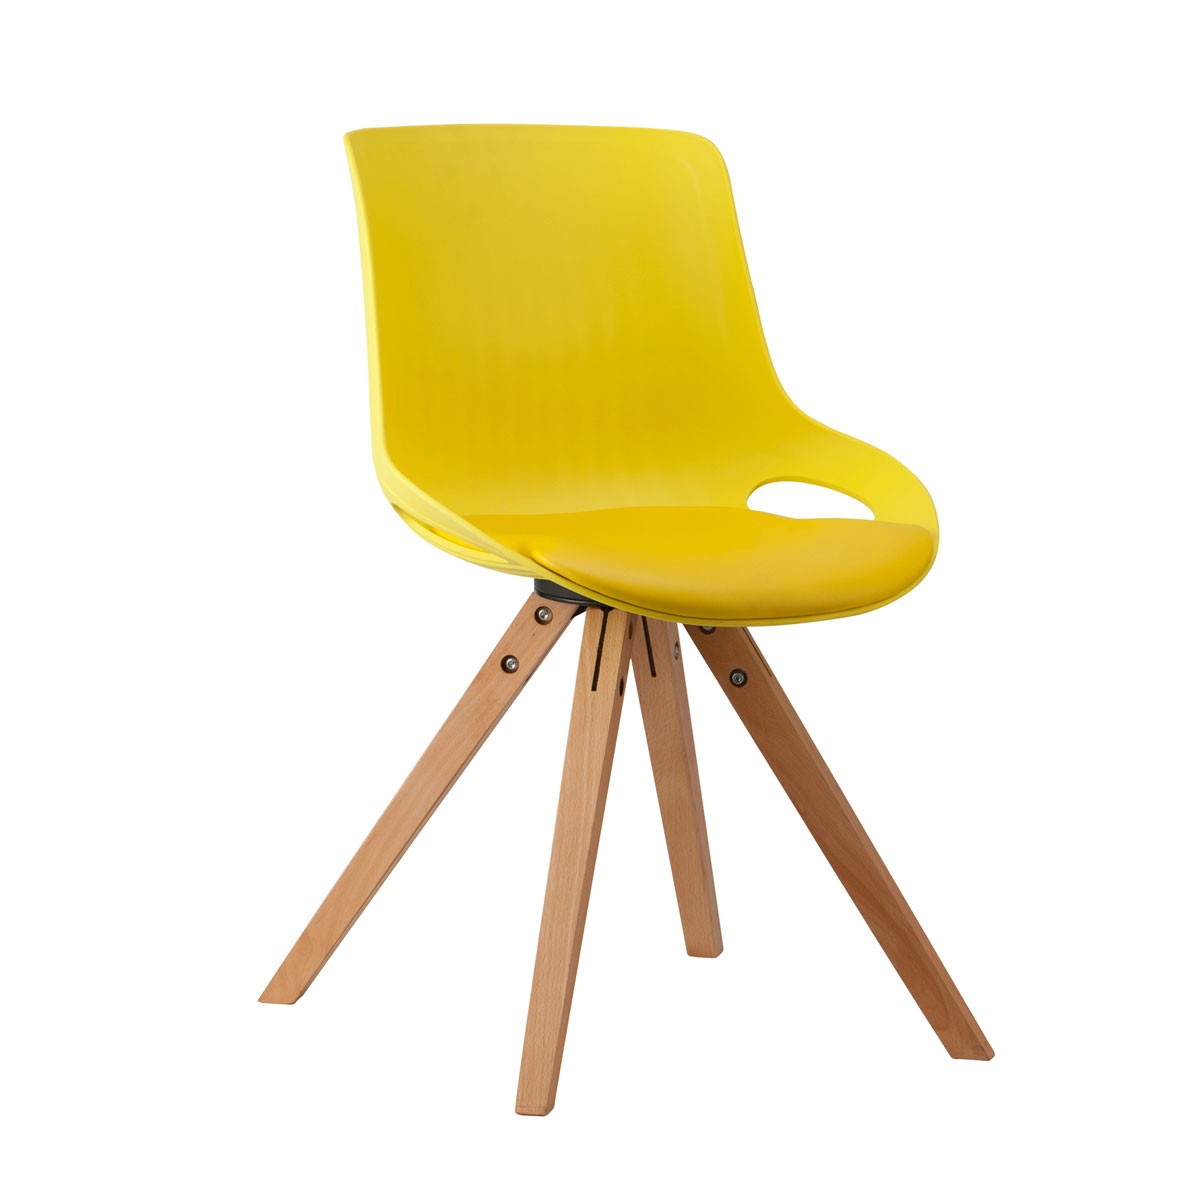 en brochure products gb in wing the terms ikea art strandmon guarantee read sofas year yellow about skiftebo chair armchairs